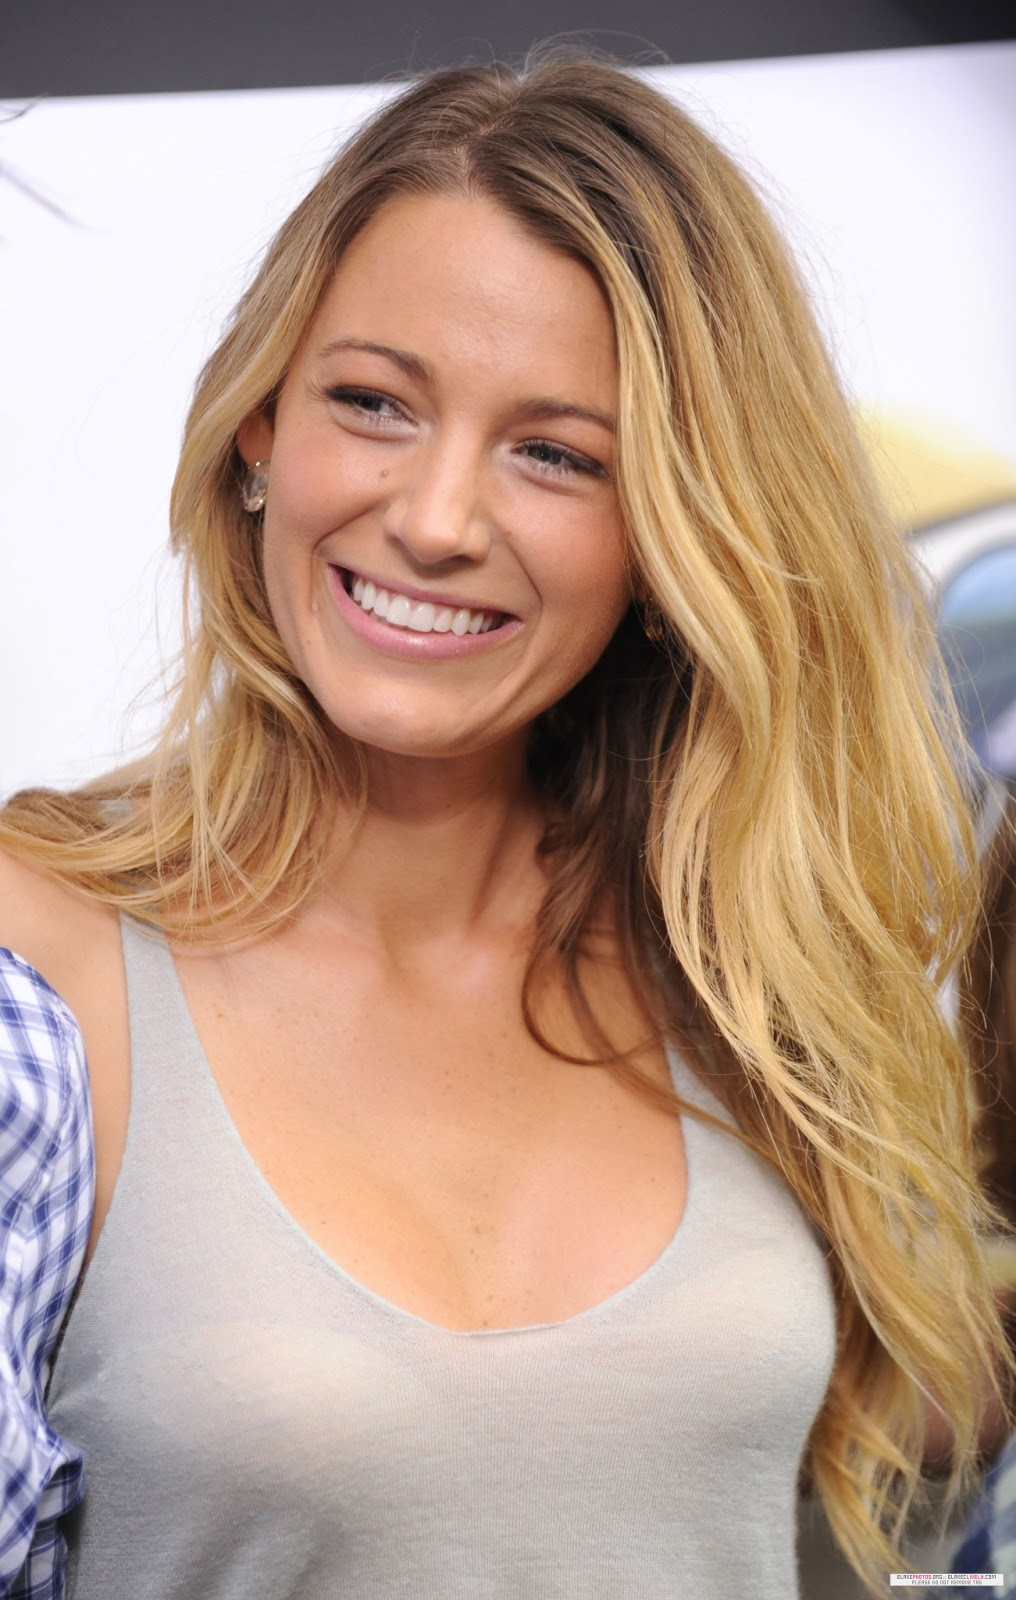 Blake Lively Hollywood Actress and Model HD Wallpaper | HD ...